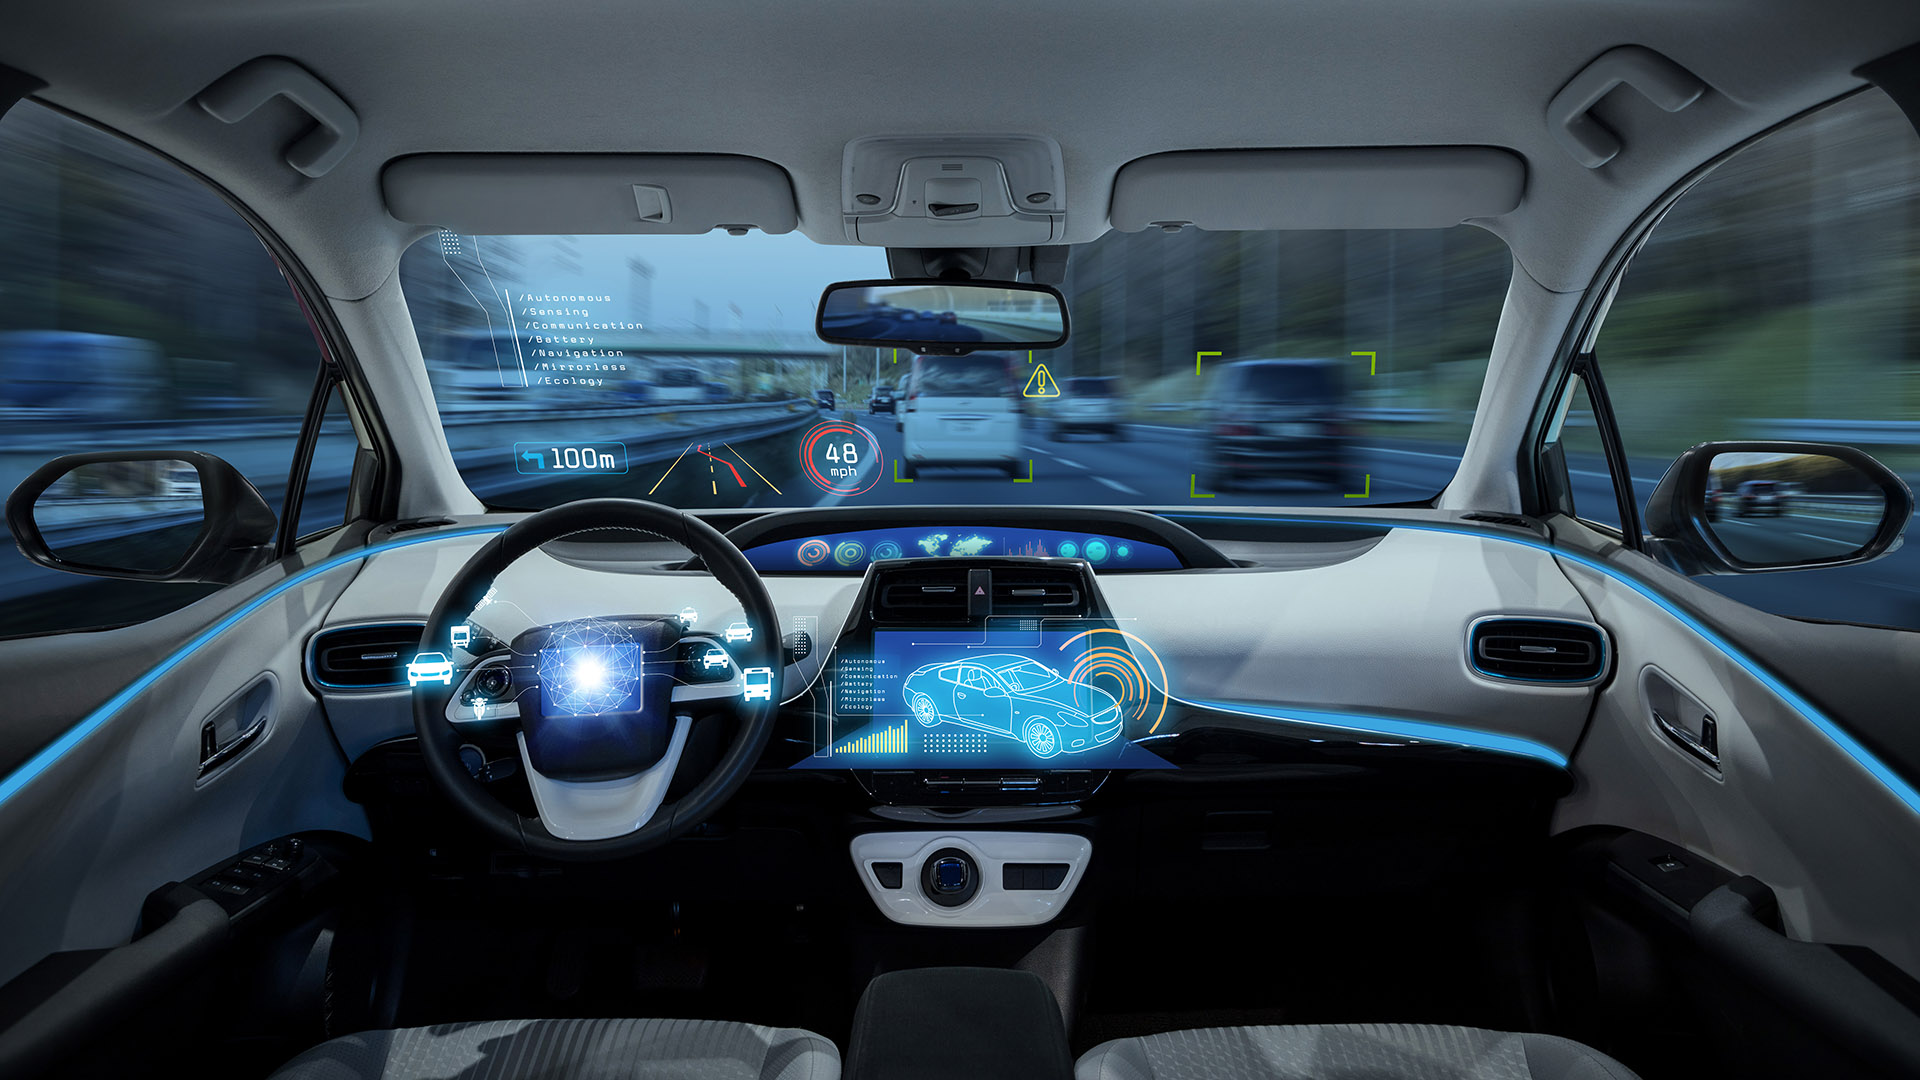 Voice Assistants, User Experience, UX, ADAS, ADASIS, V2X, c-V2X, Connected Vehicles, Autonomous, Infotainment, Predictions, 2019, Location Based Services, Automotive, Industry, Trends, Electric Vehicles, HMI, Navigation, UI, Tamas Kerecsen, CTO, NNG